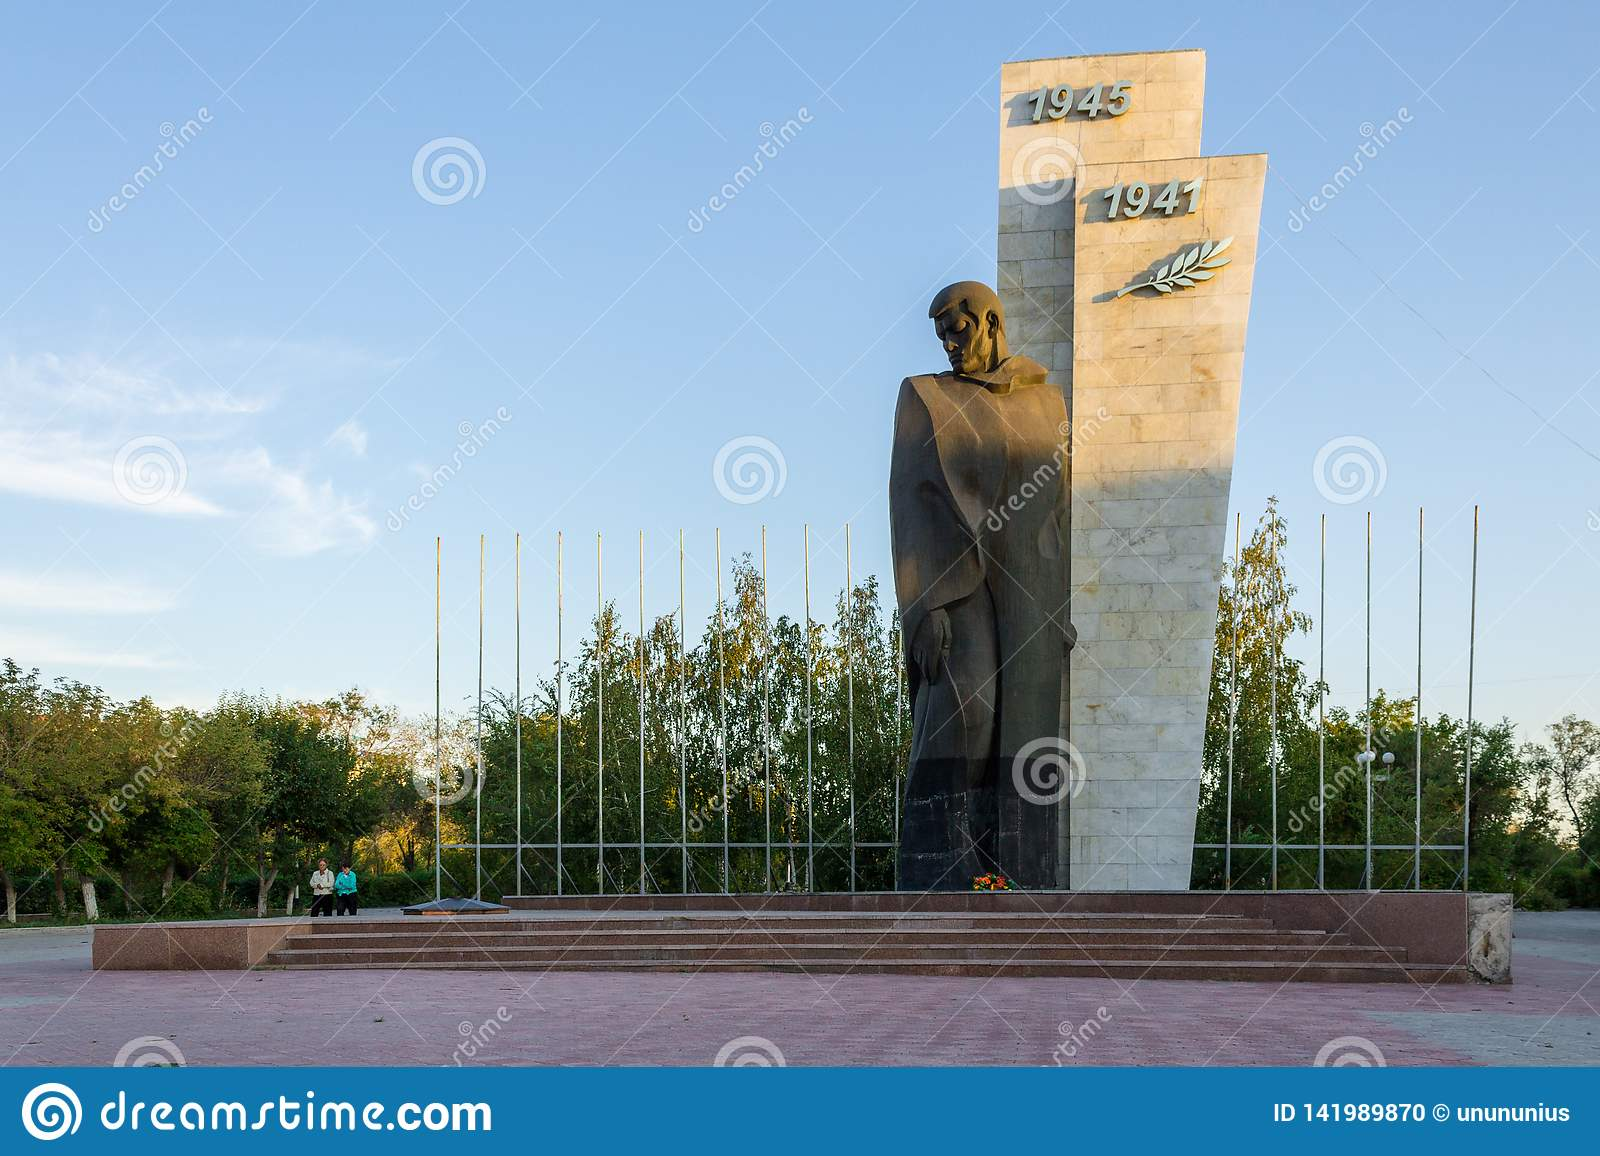 Panorama view on lonely Monument of the unknown soldier second world war. The Person is standing. Located in Temirtau, Kazakhstan